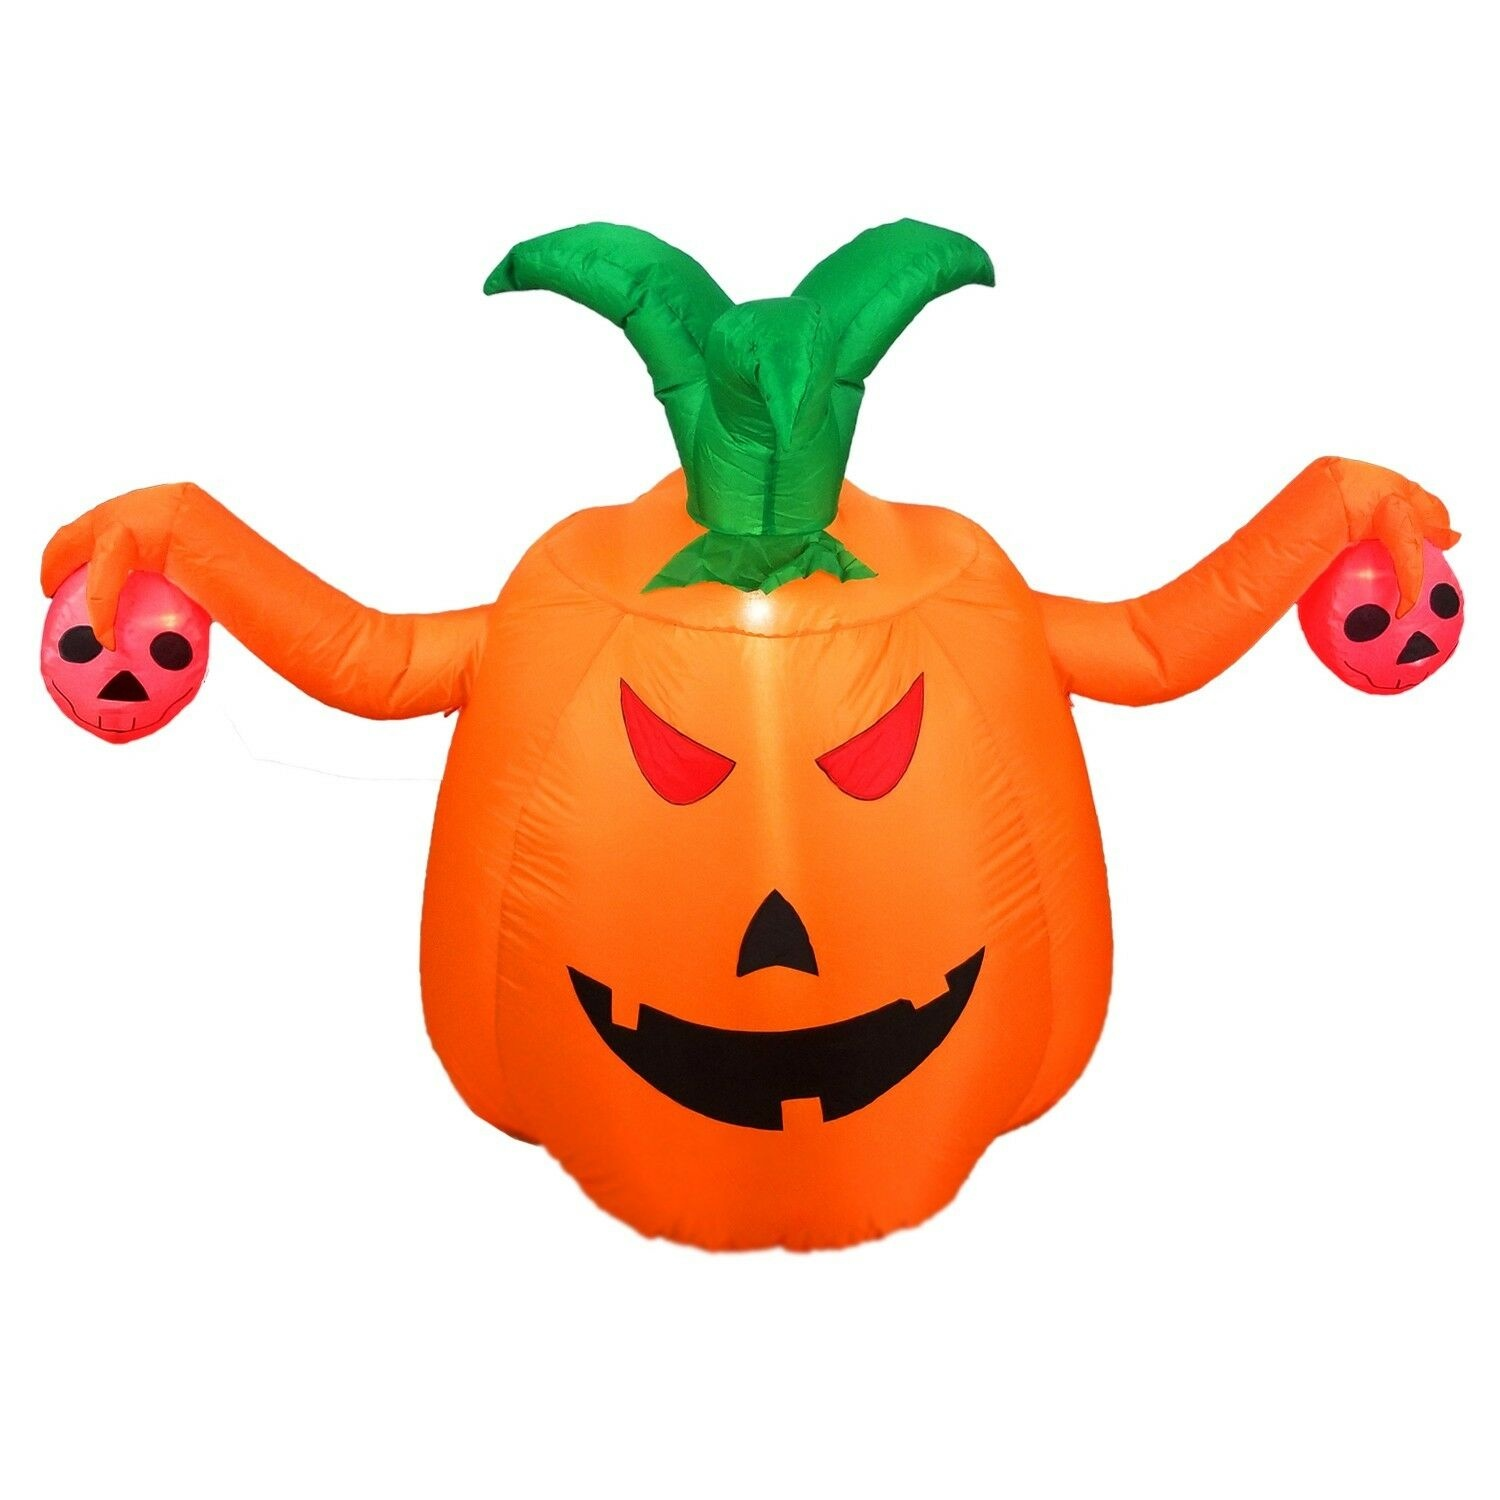 5 Foot Halloween Inflatable Pumpkin Halloween Decorations